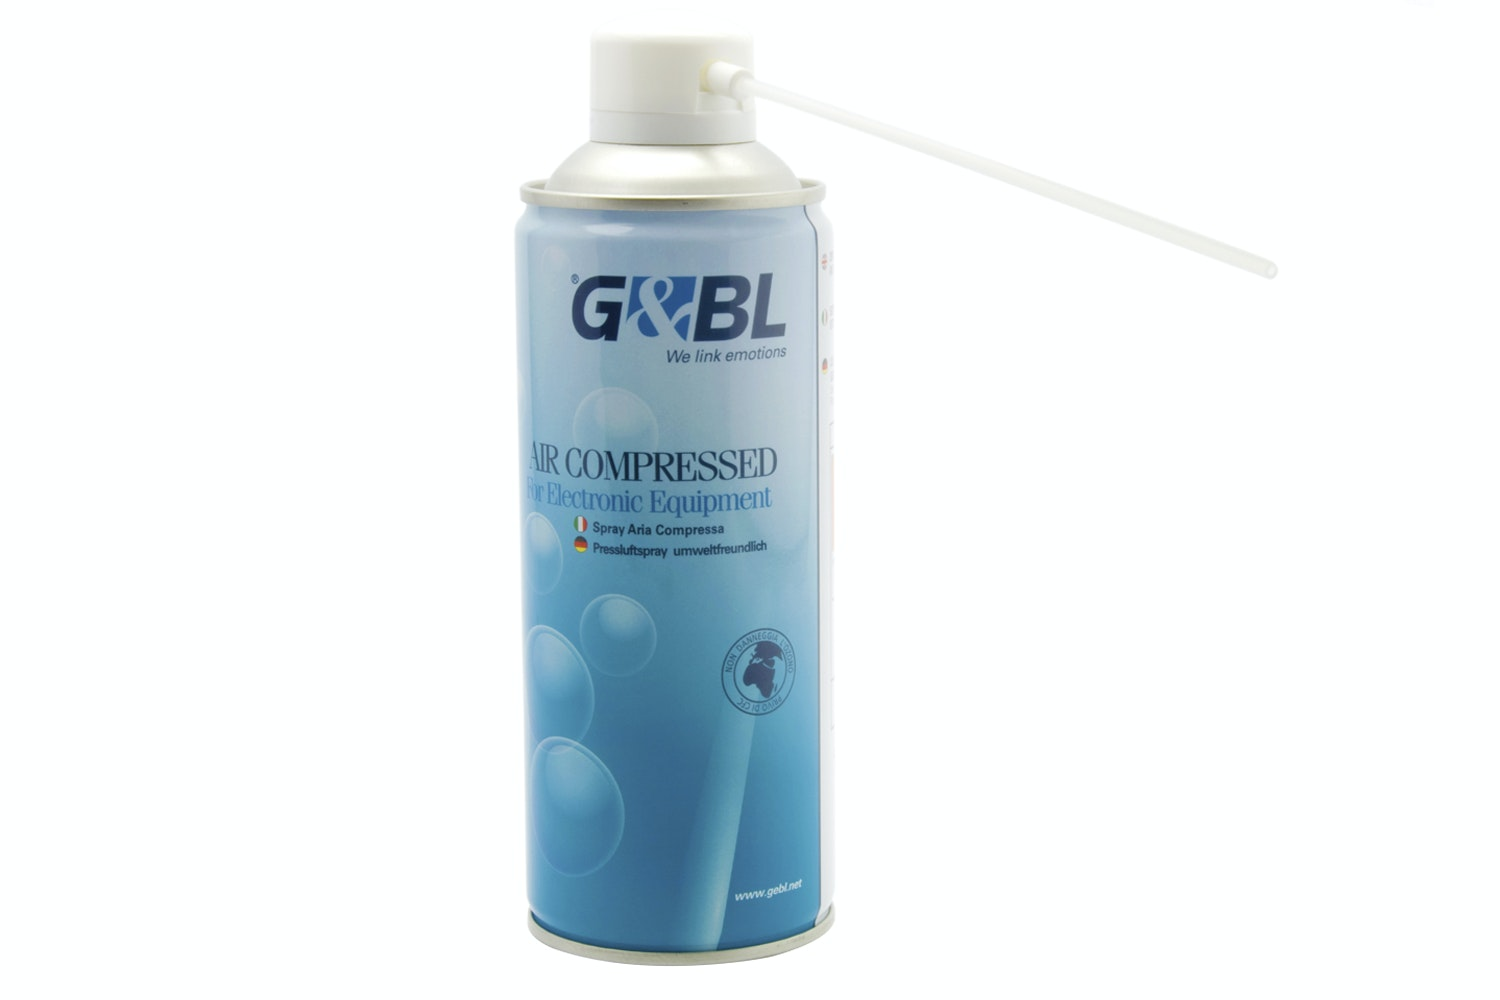 G&BL Eco Compressed Air Spray 400ml